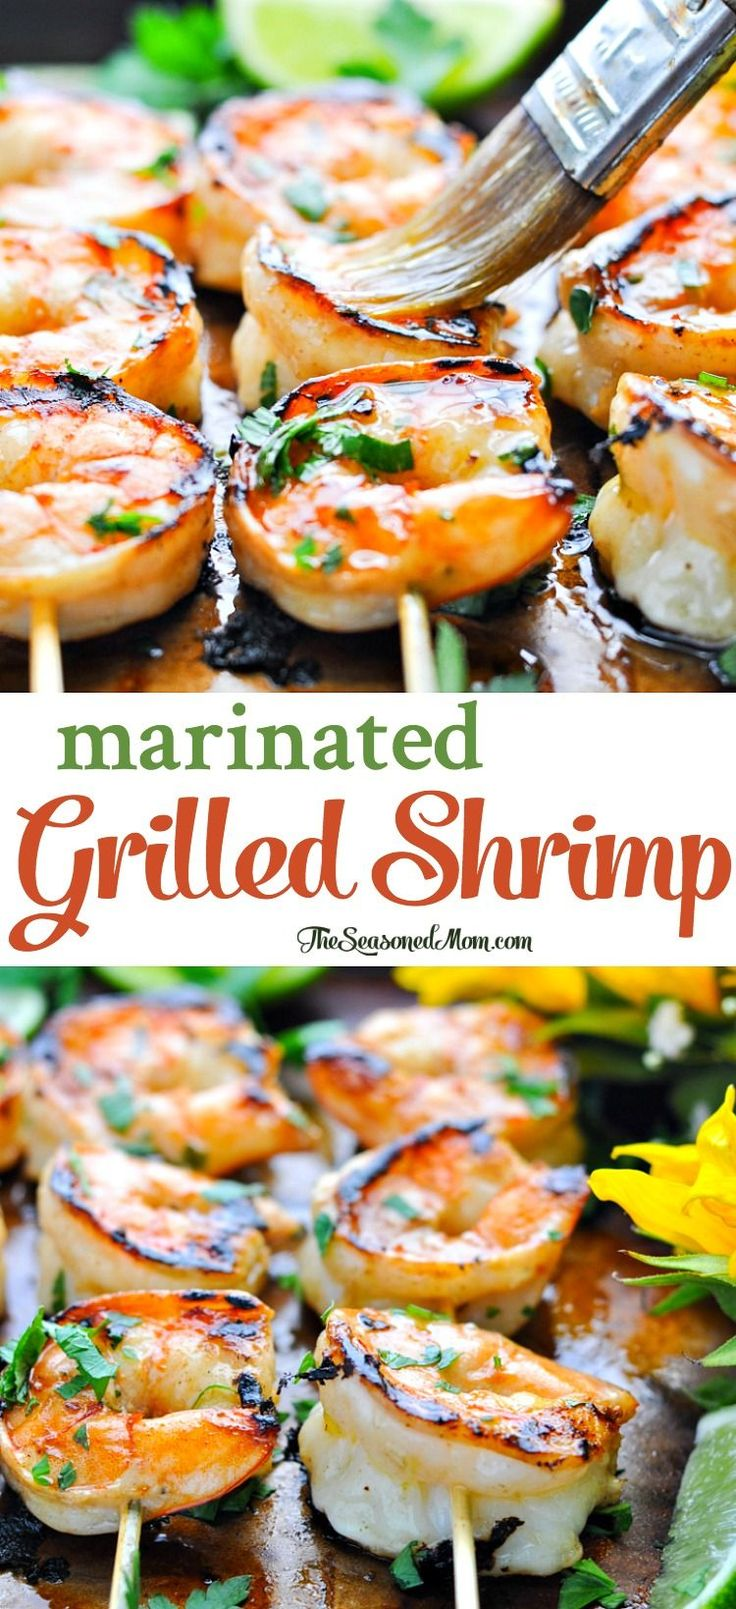 Marinated Grilled Shrimp: 3/3*, easy, flavorful marinade that is simply delicious! Definite keeper, marinated the shrimp for ~45 mins, next time go a little longer for more flavor. Grilled 5-6 mins. Served w/sautéed spinach and marinated cucumber tomato salad. Made 7/15/17